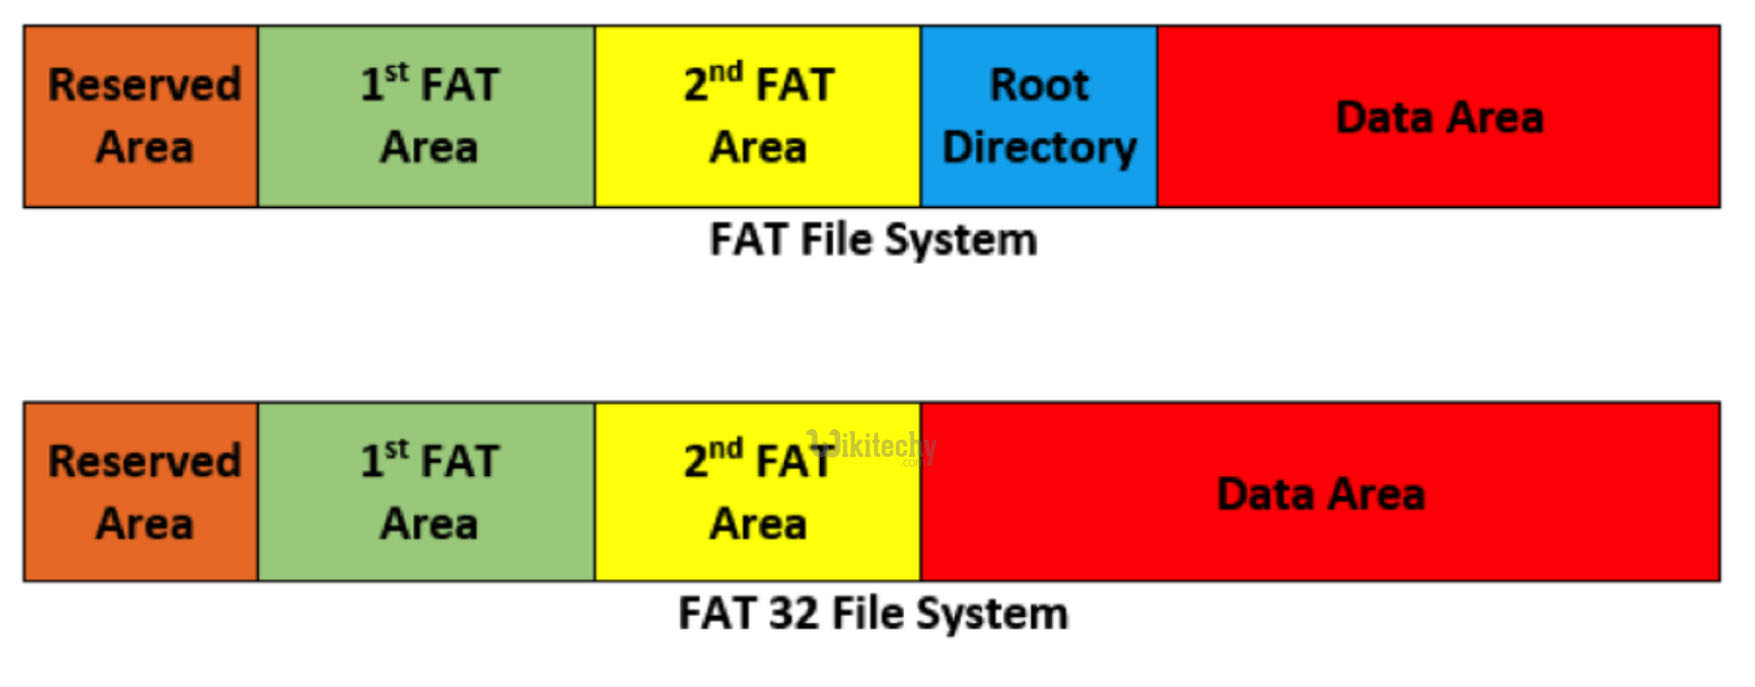 FAT File System